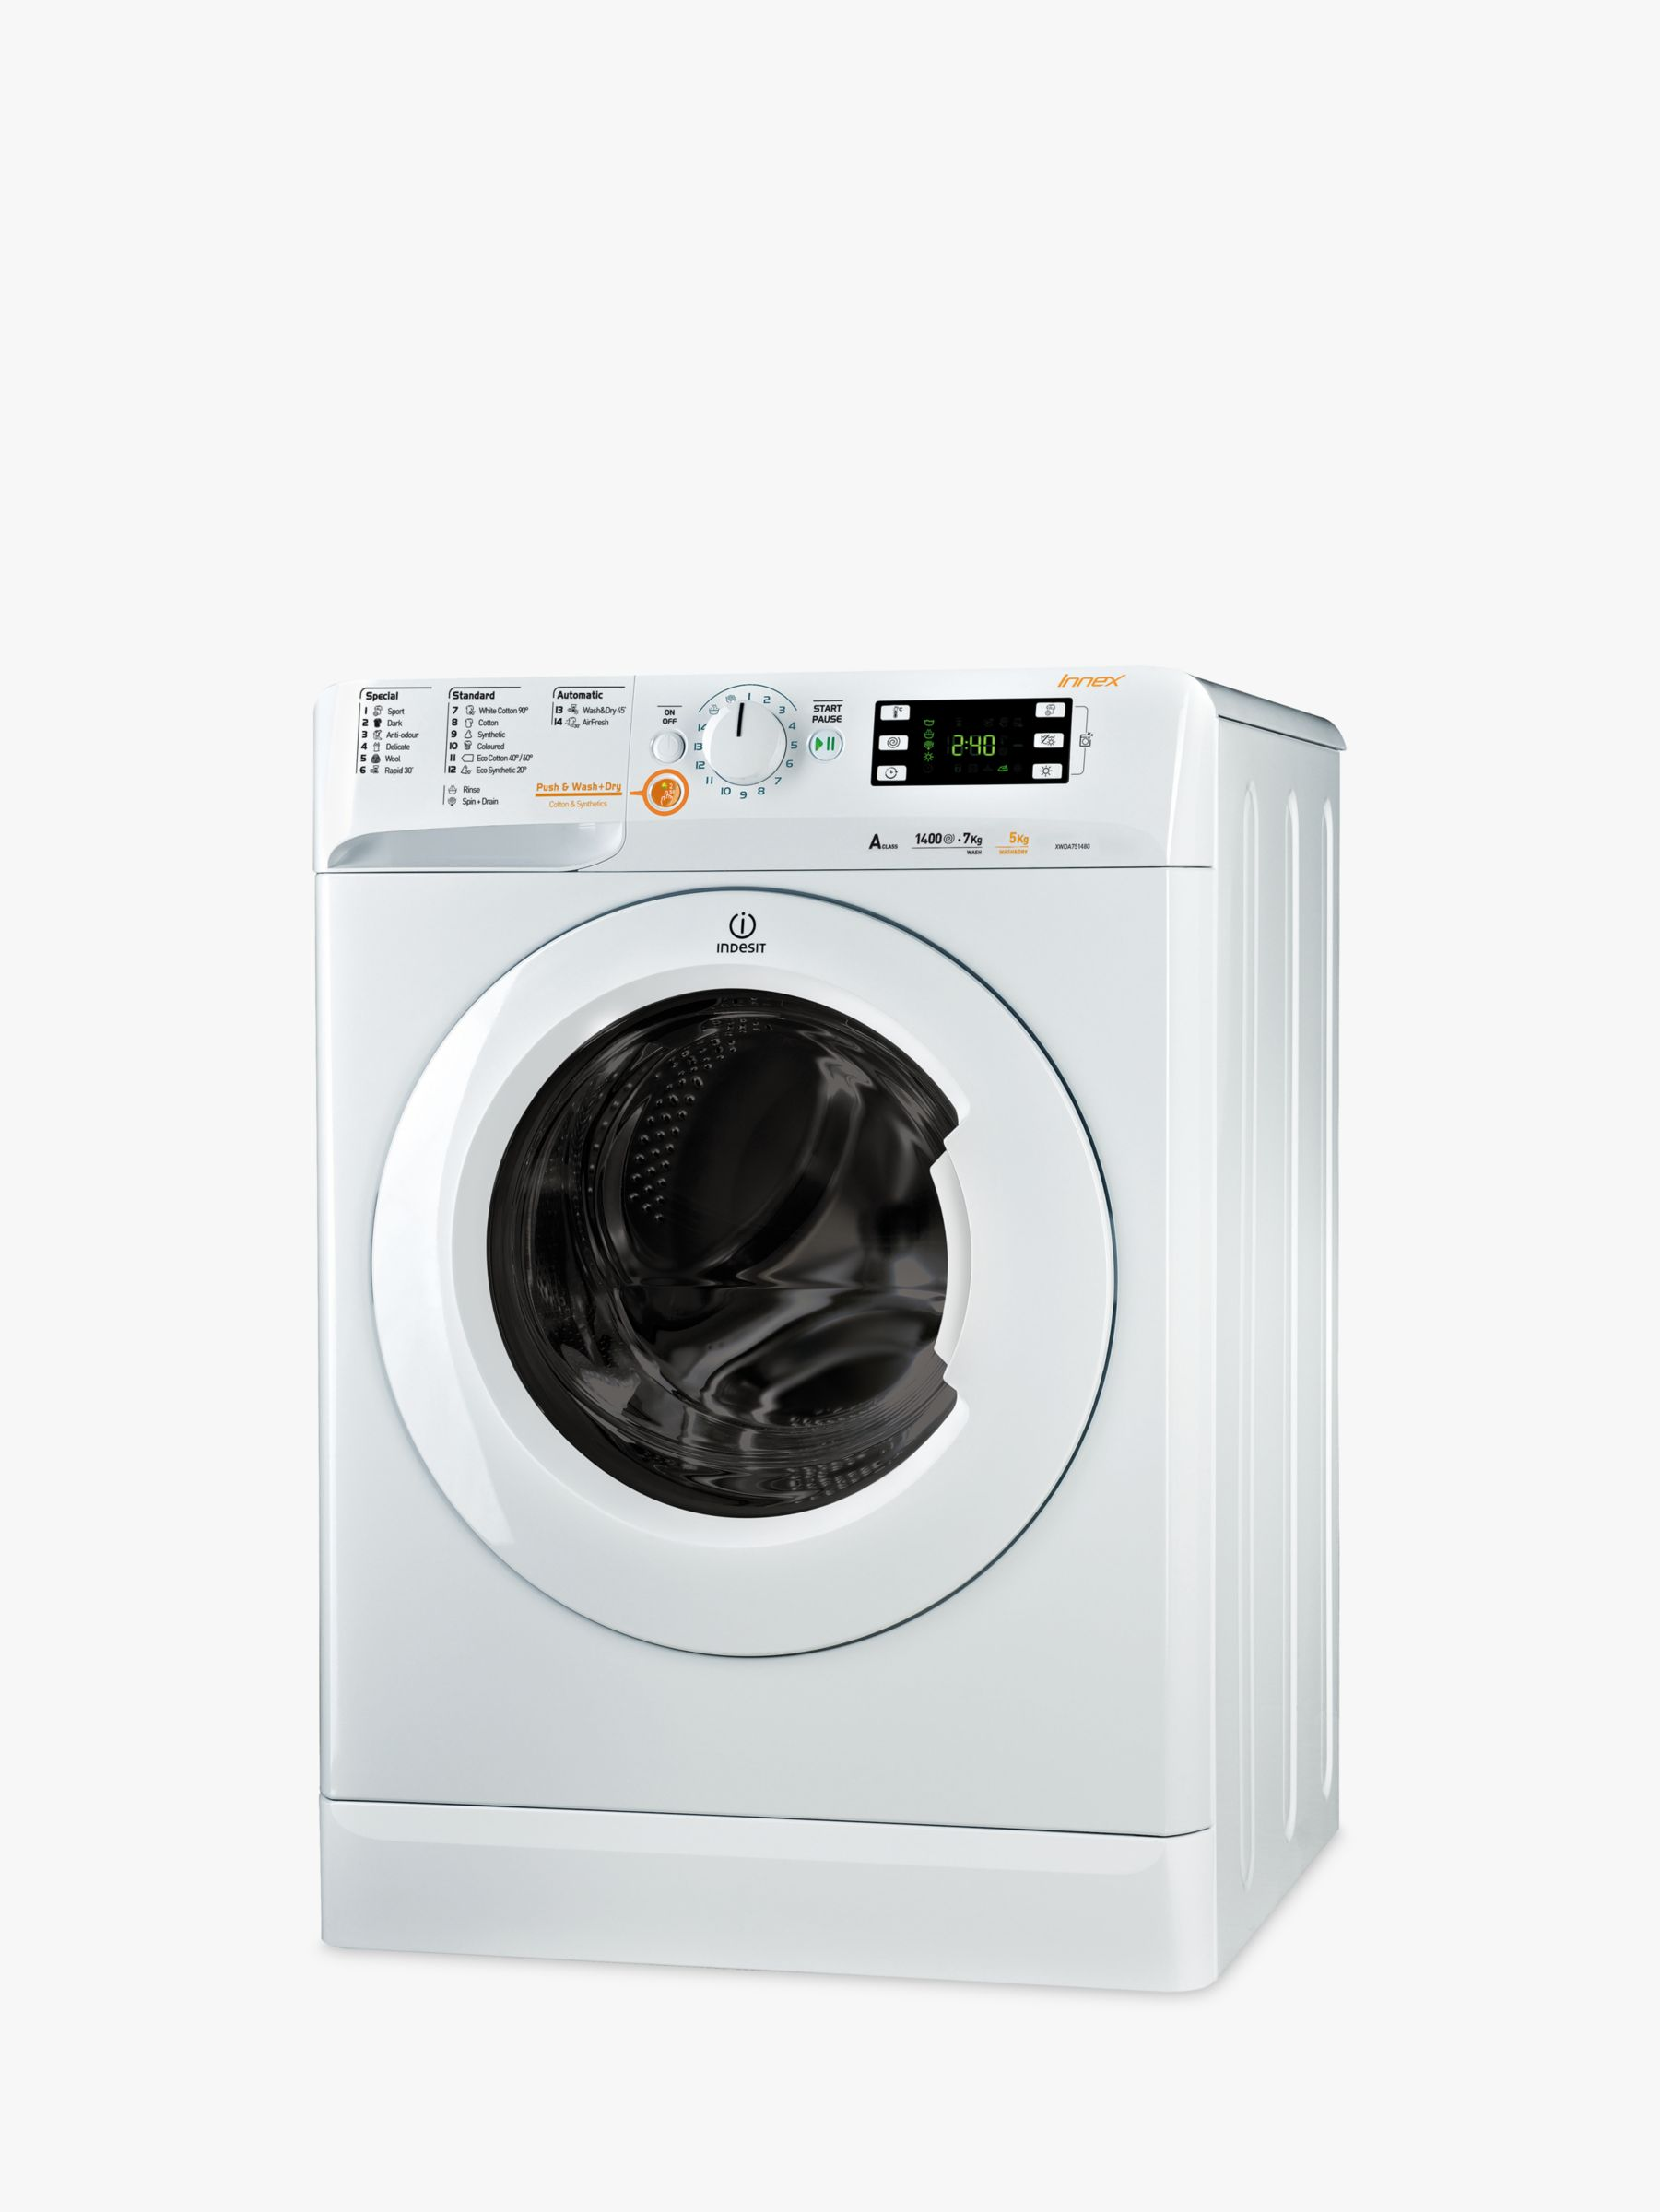 Indesit Indesit Innex XWDE751480XW Freestanding Washer Dryer, 7kg Wash/5kg Dry Load, A Energy Rating, 1400rpm Spin, White